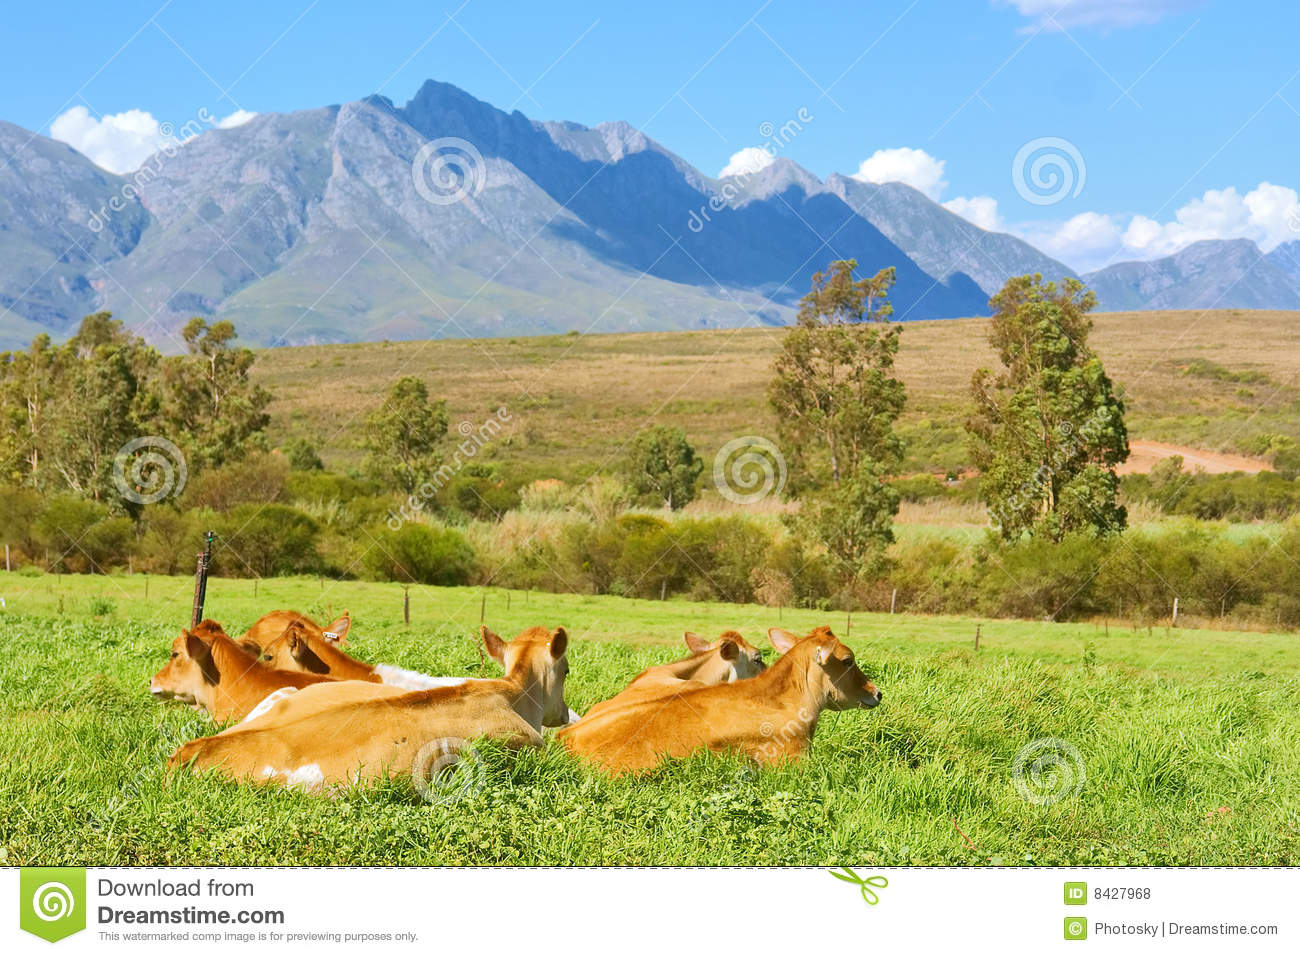 Herd of cow on grass in mountains